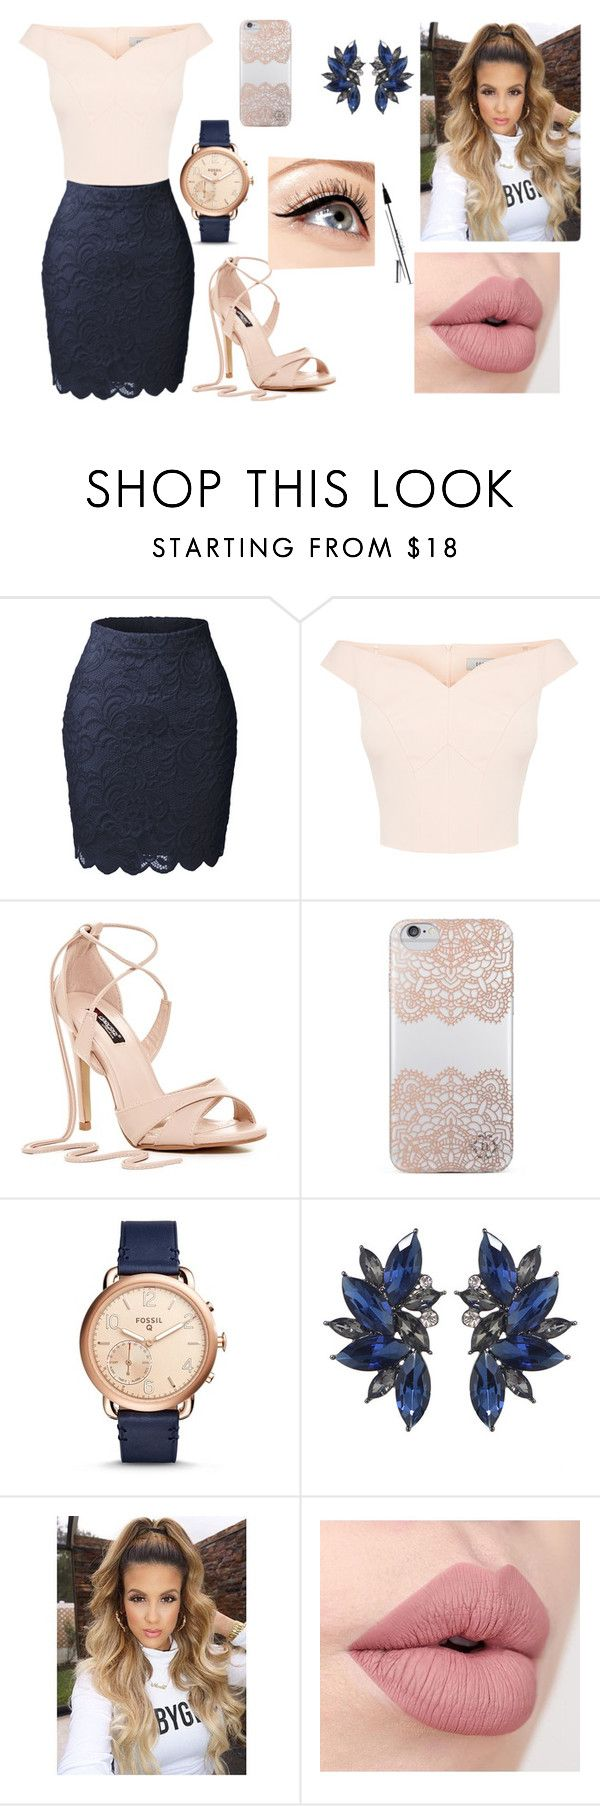 """Без названия #9"" by dasha-2002 on Polyvore featuring косметика, LE3NO, Nanette Lepore, FOSSIL и Luminess Air"